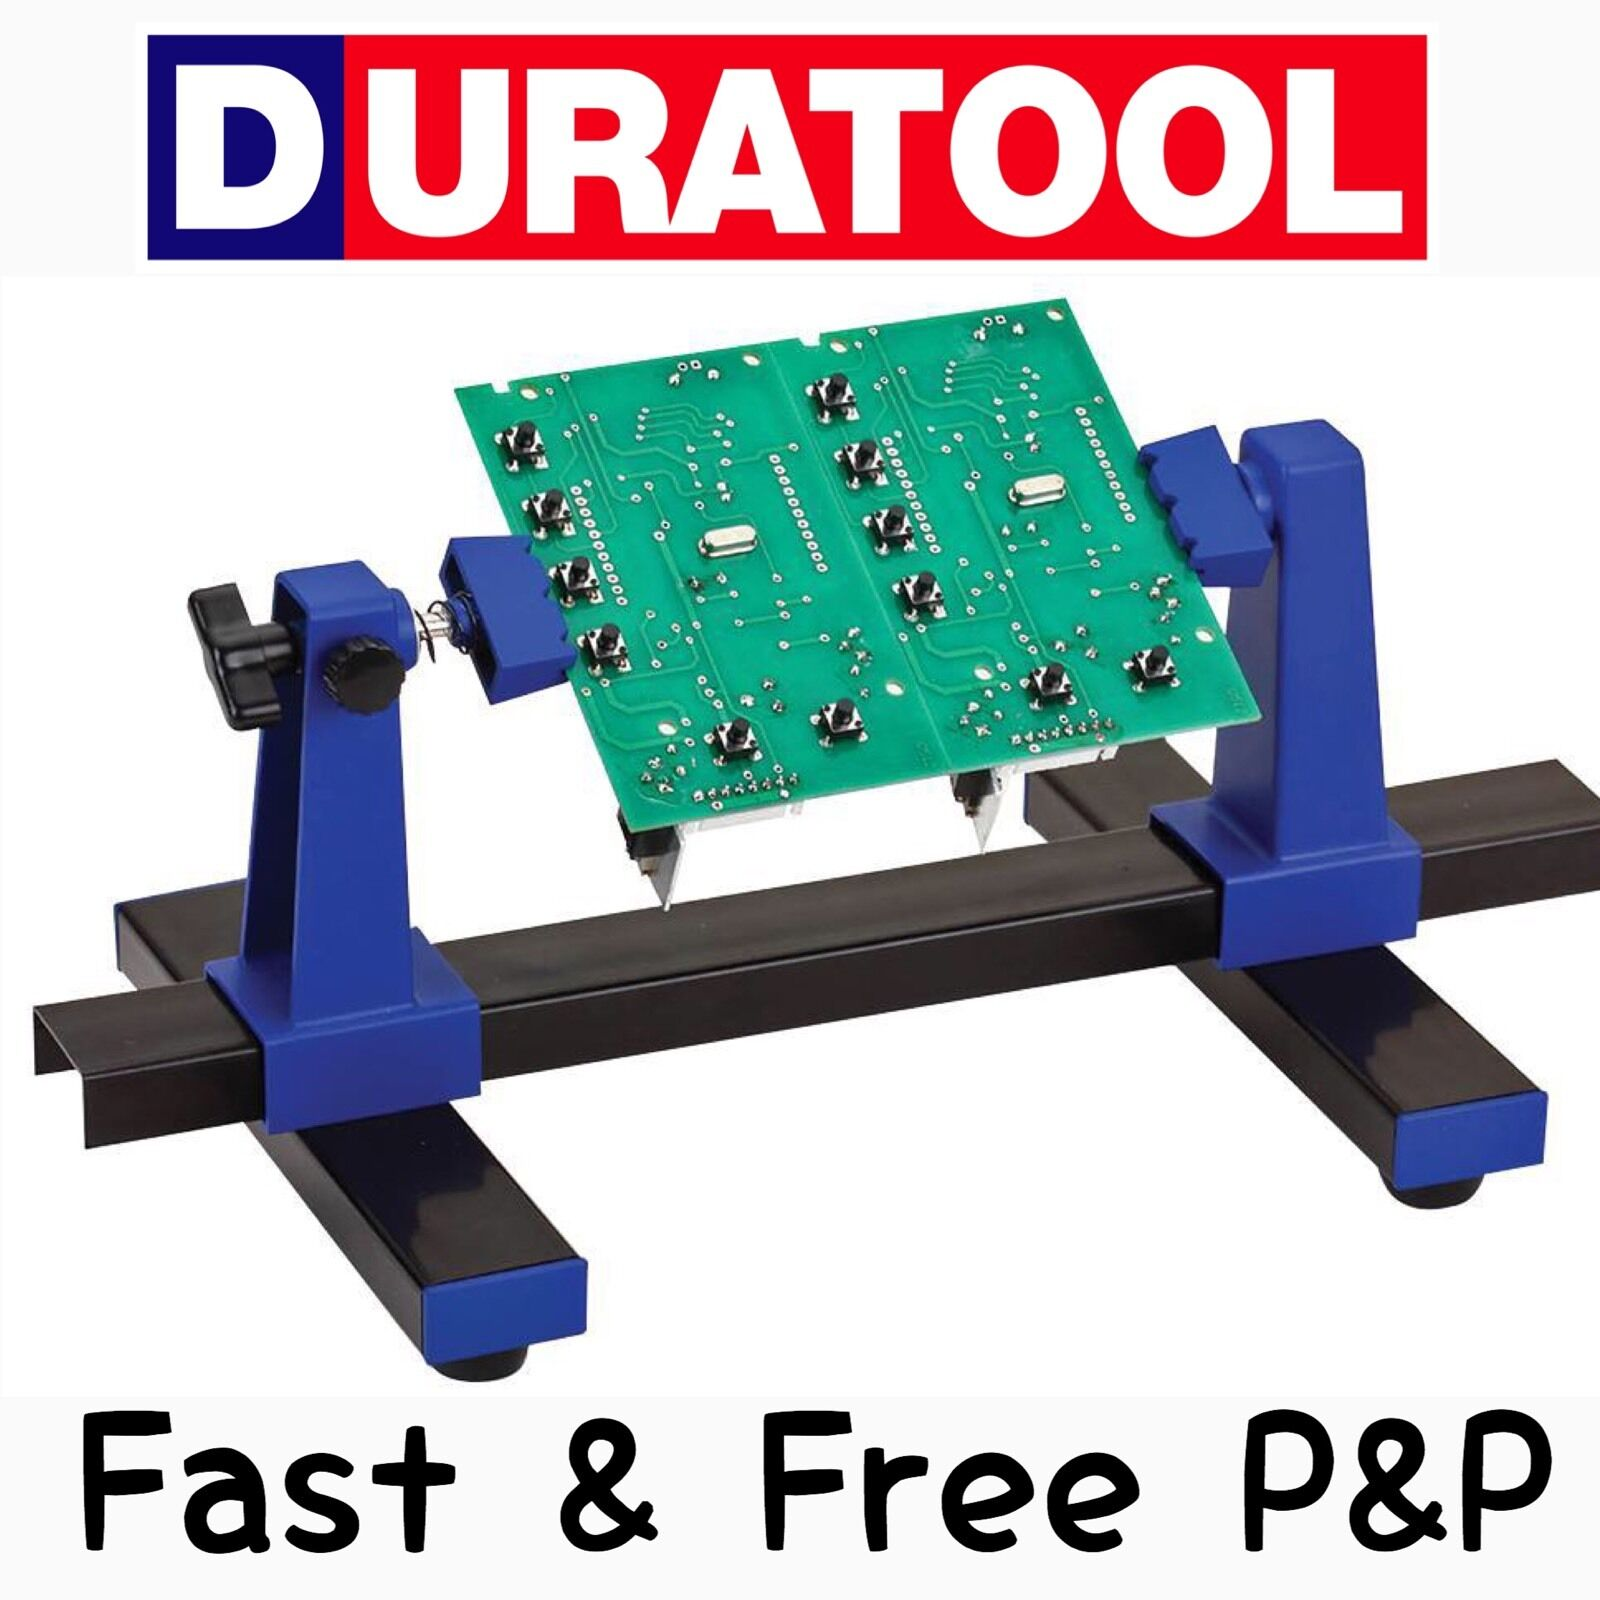 Pcb Holder Circuit Board Soldering 360 Adjustable Phone For Cell Repair Clamp Fixture Stand Toolsin Tool Model 1 Of 2free Shipping